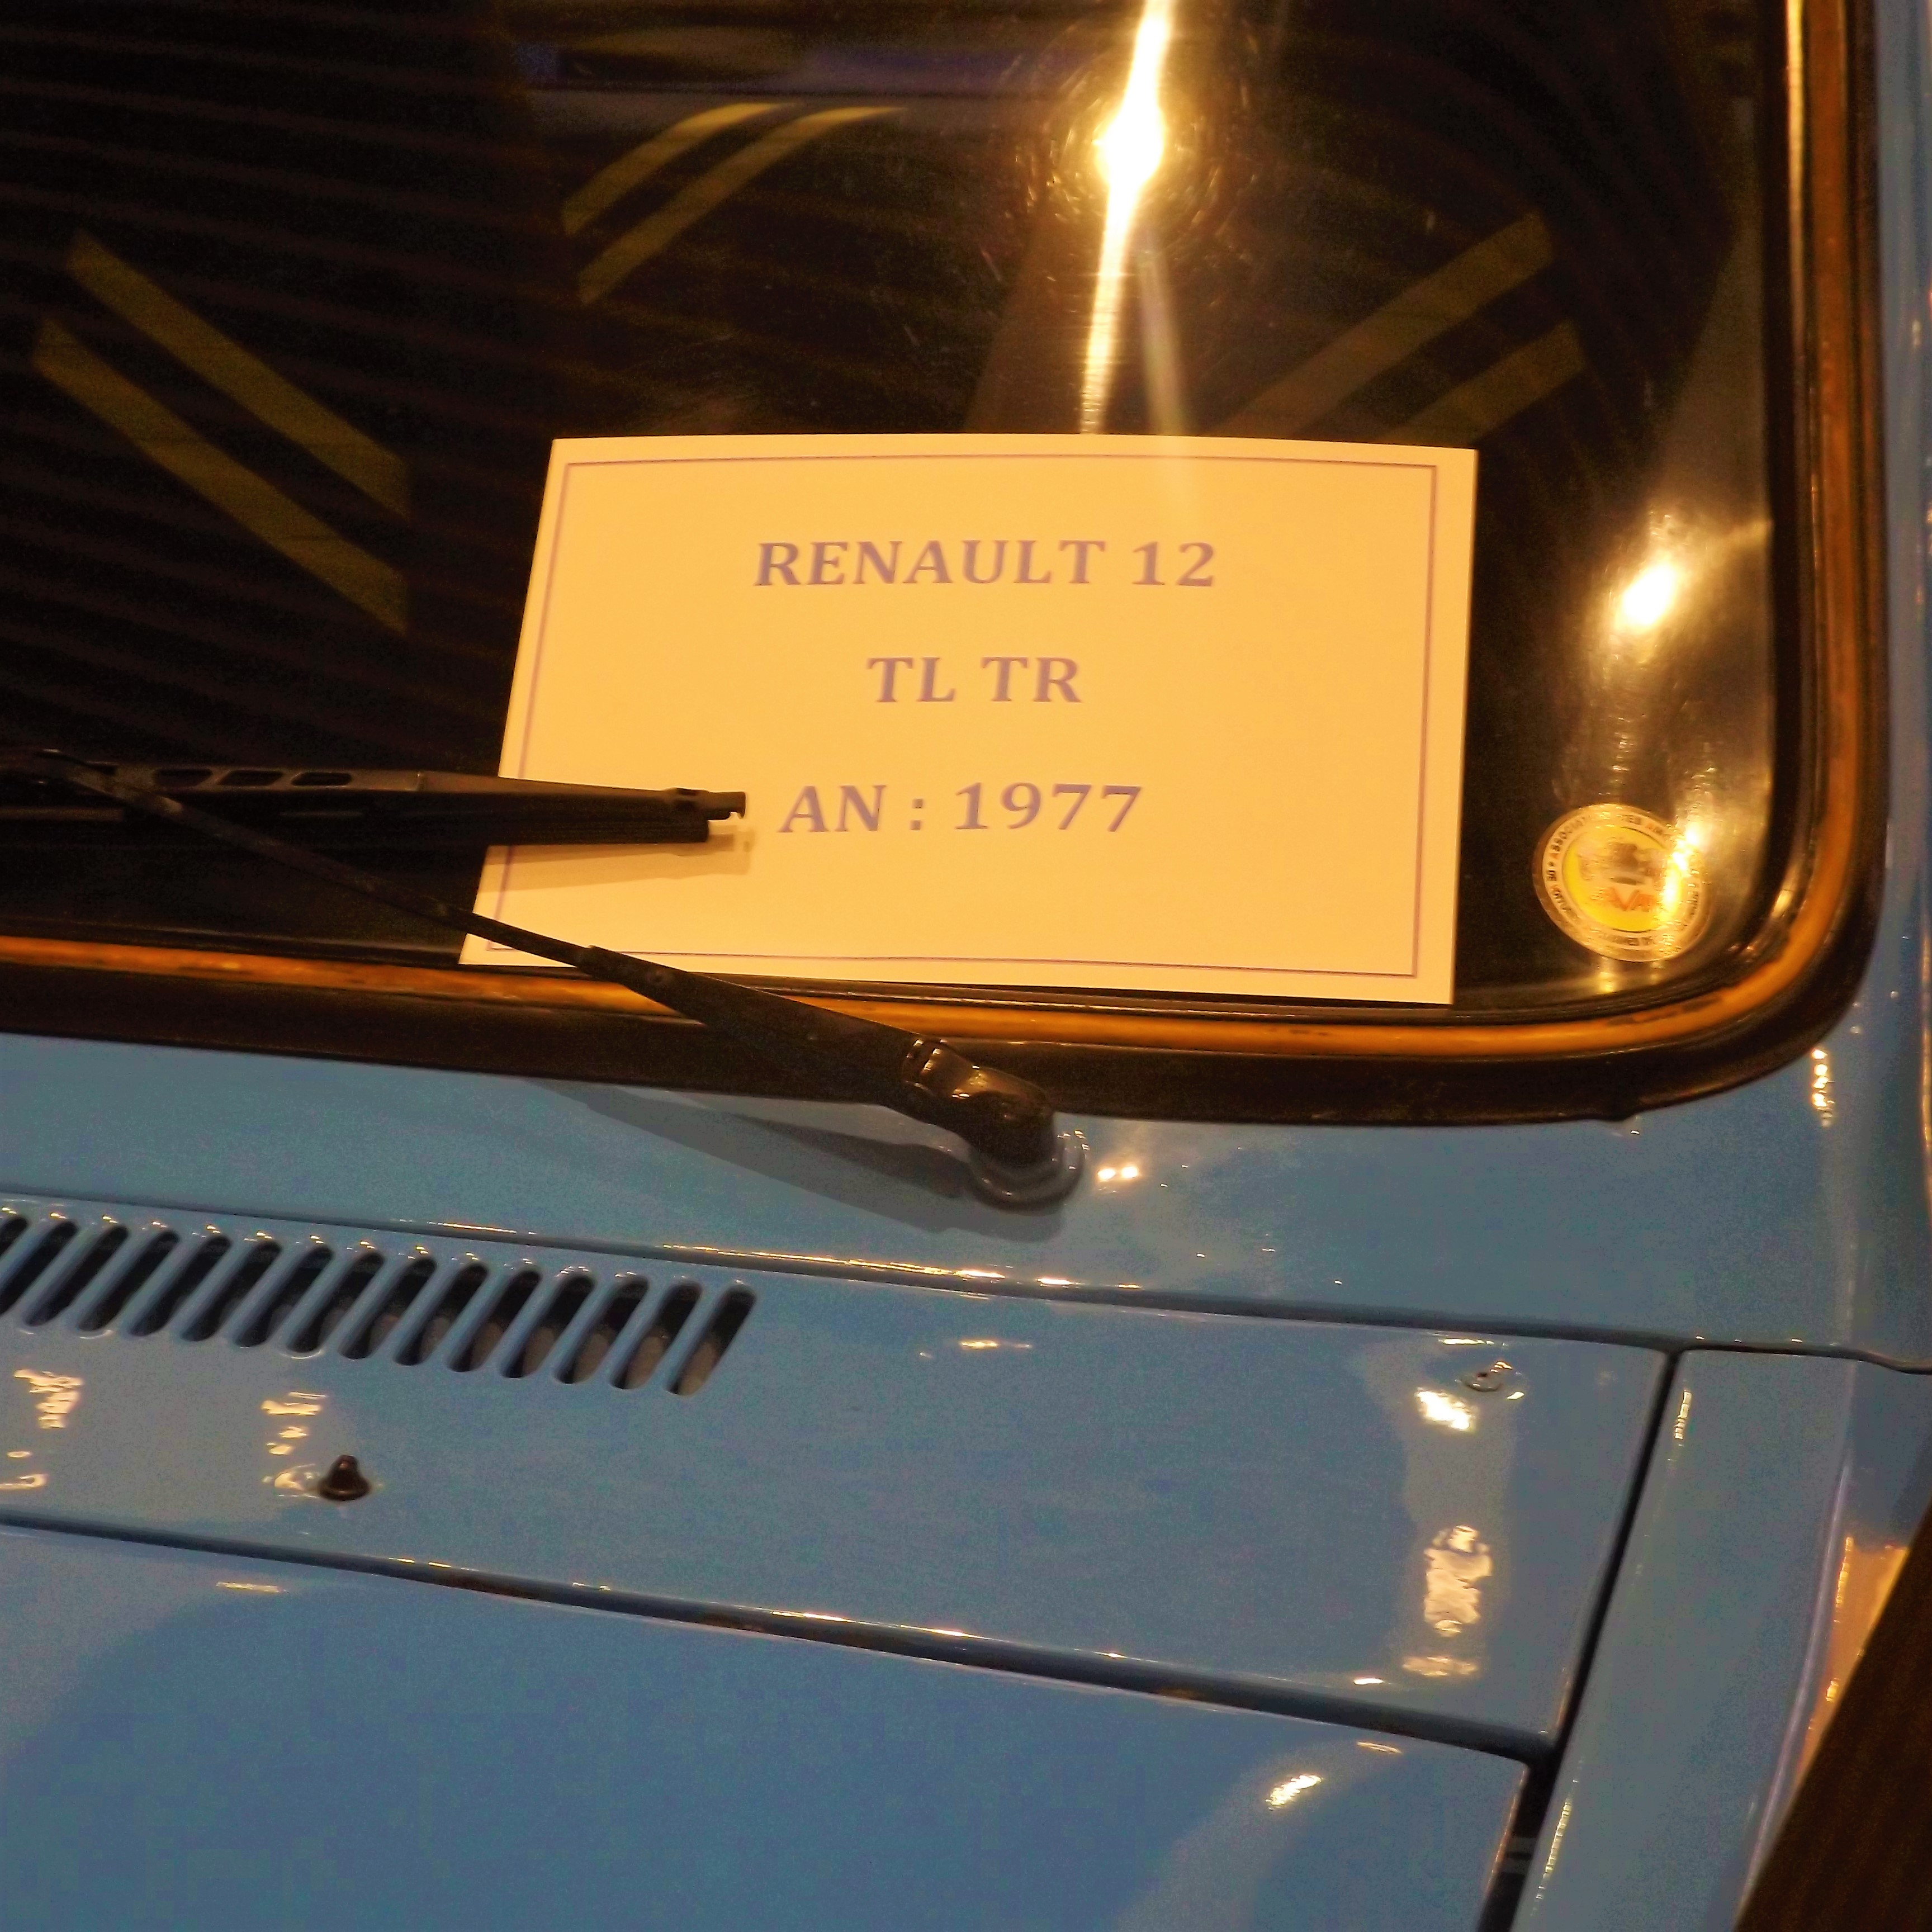 carrefour | Renault 15 TL TR 1977